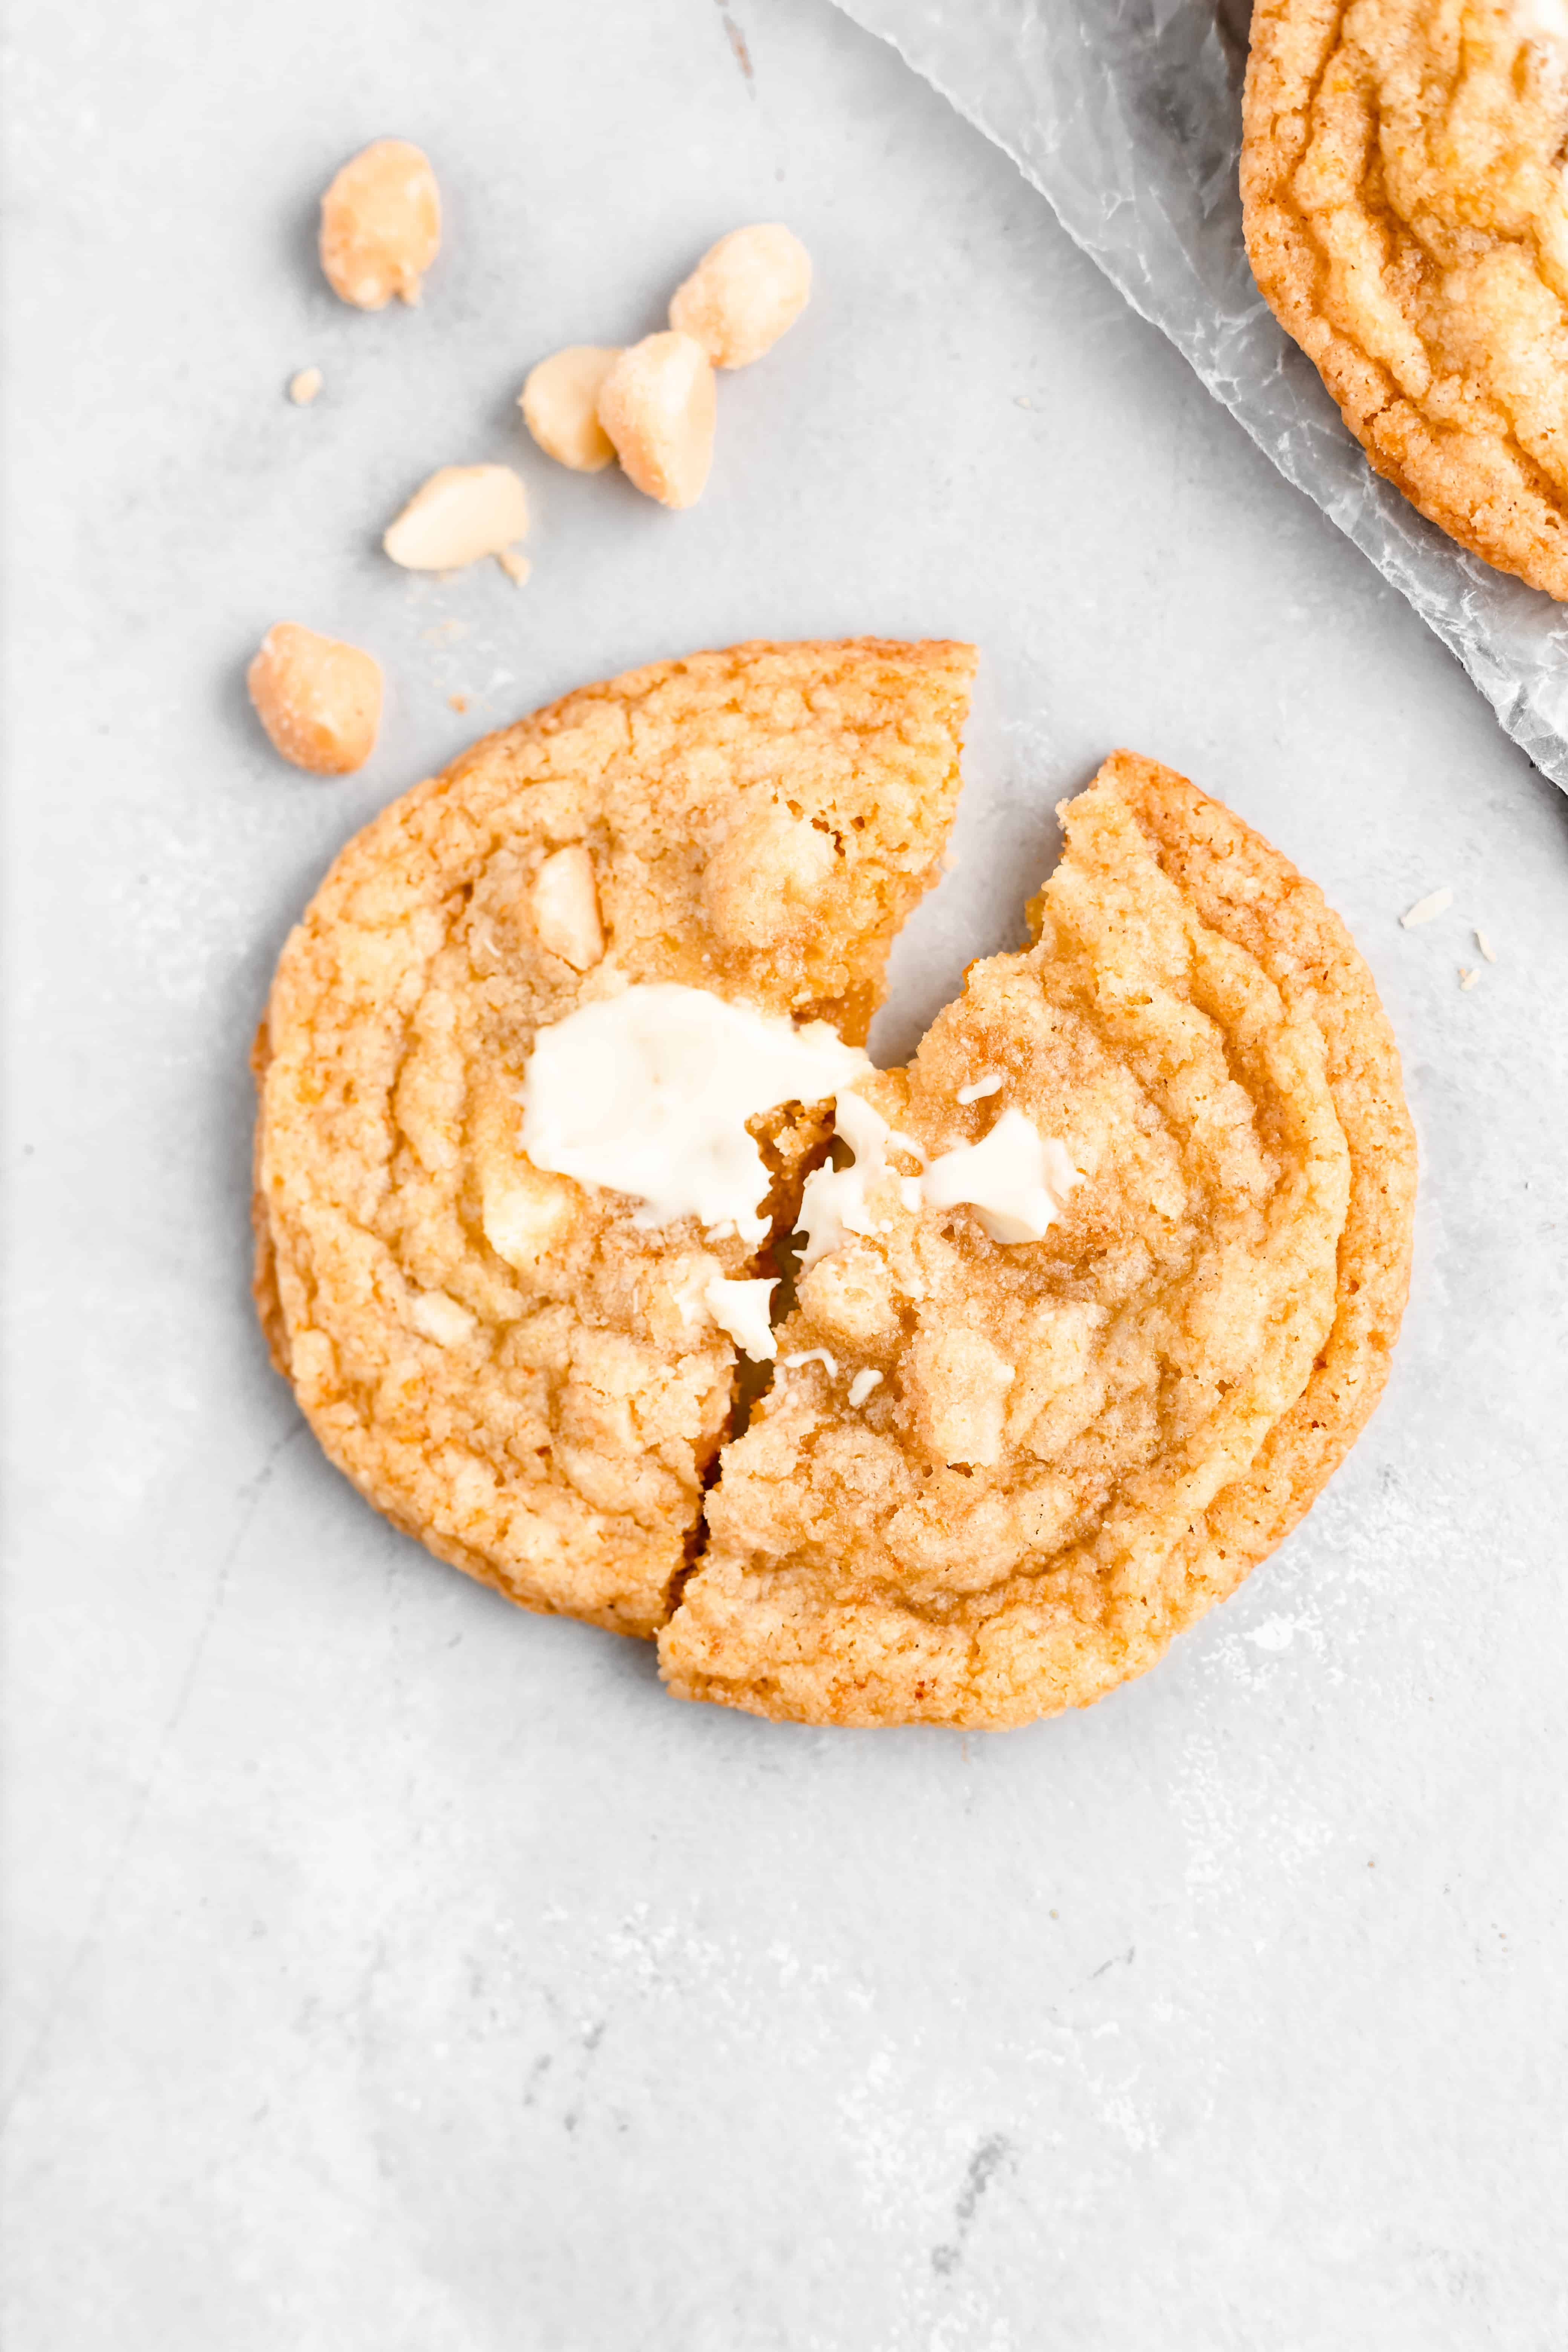 White Chocolate Orange Macadamia Nut Cookie recipe - crisp edges, soft and chewy centers!